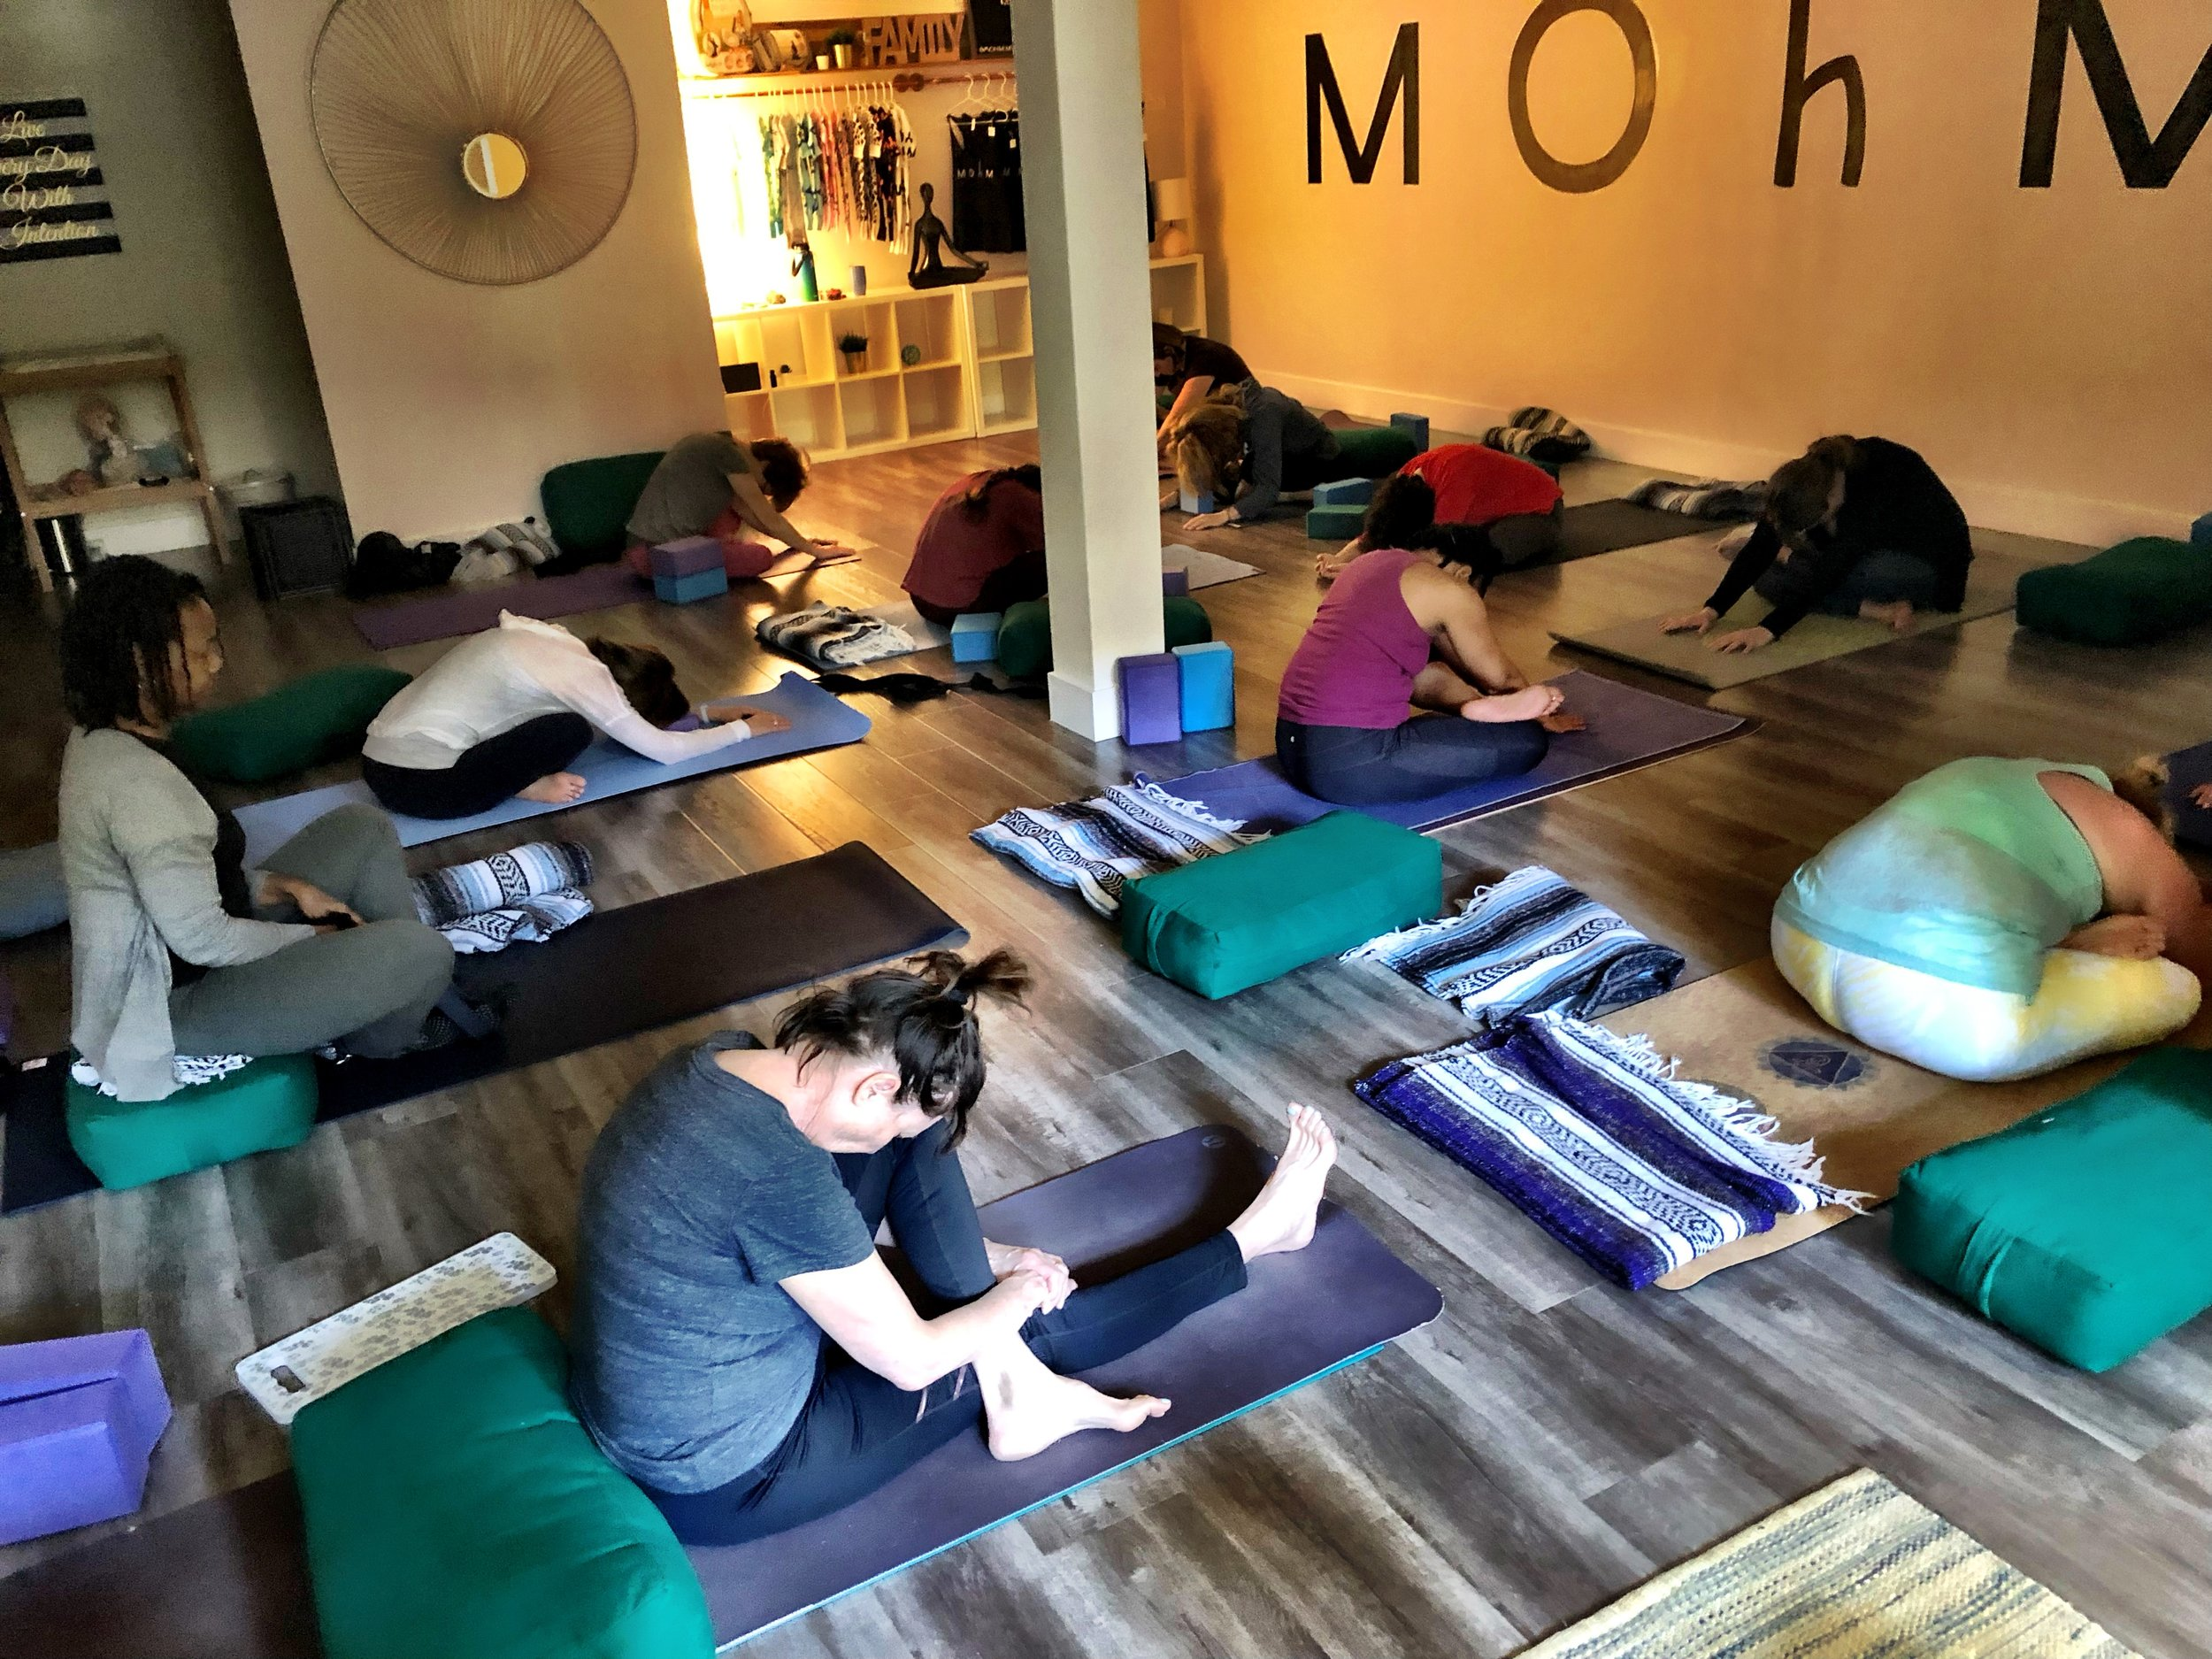 Gentle Yoga - Gentle yoga is a bridge between moving in flow and staying stationary. It is a midway, where there is equilibrium and bliss in every pose.No class offered at this time.Classes will be held inside Mohm Yoga Studio27001 La Paz Rd Suite 348, Mission Viejo, CA 92691